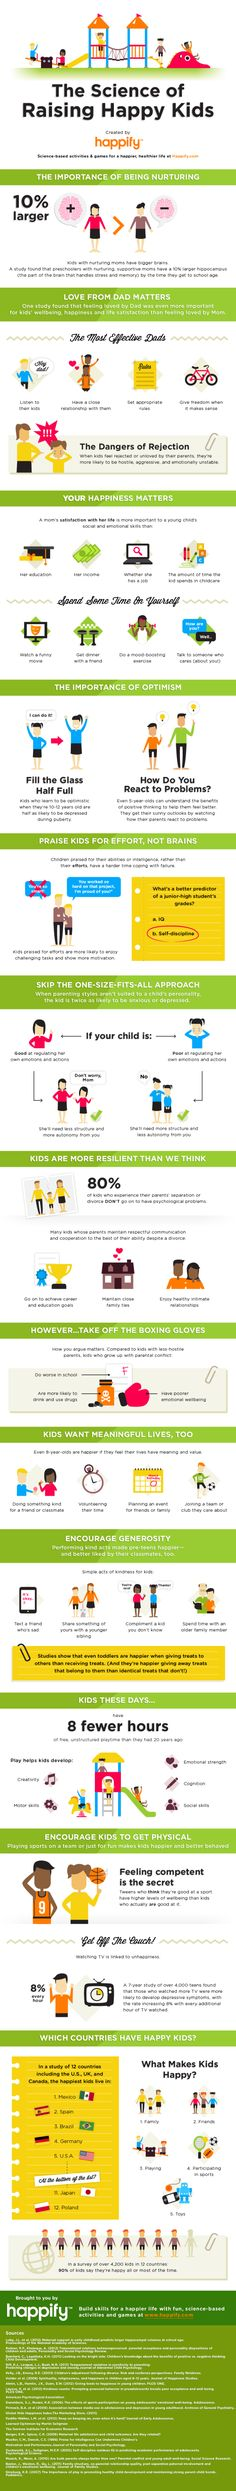 This #Infographic Reveals How to Raise Happy and Healthy #Kids | via @Julia Curran